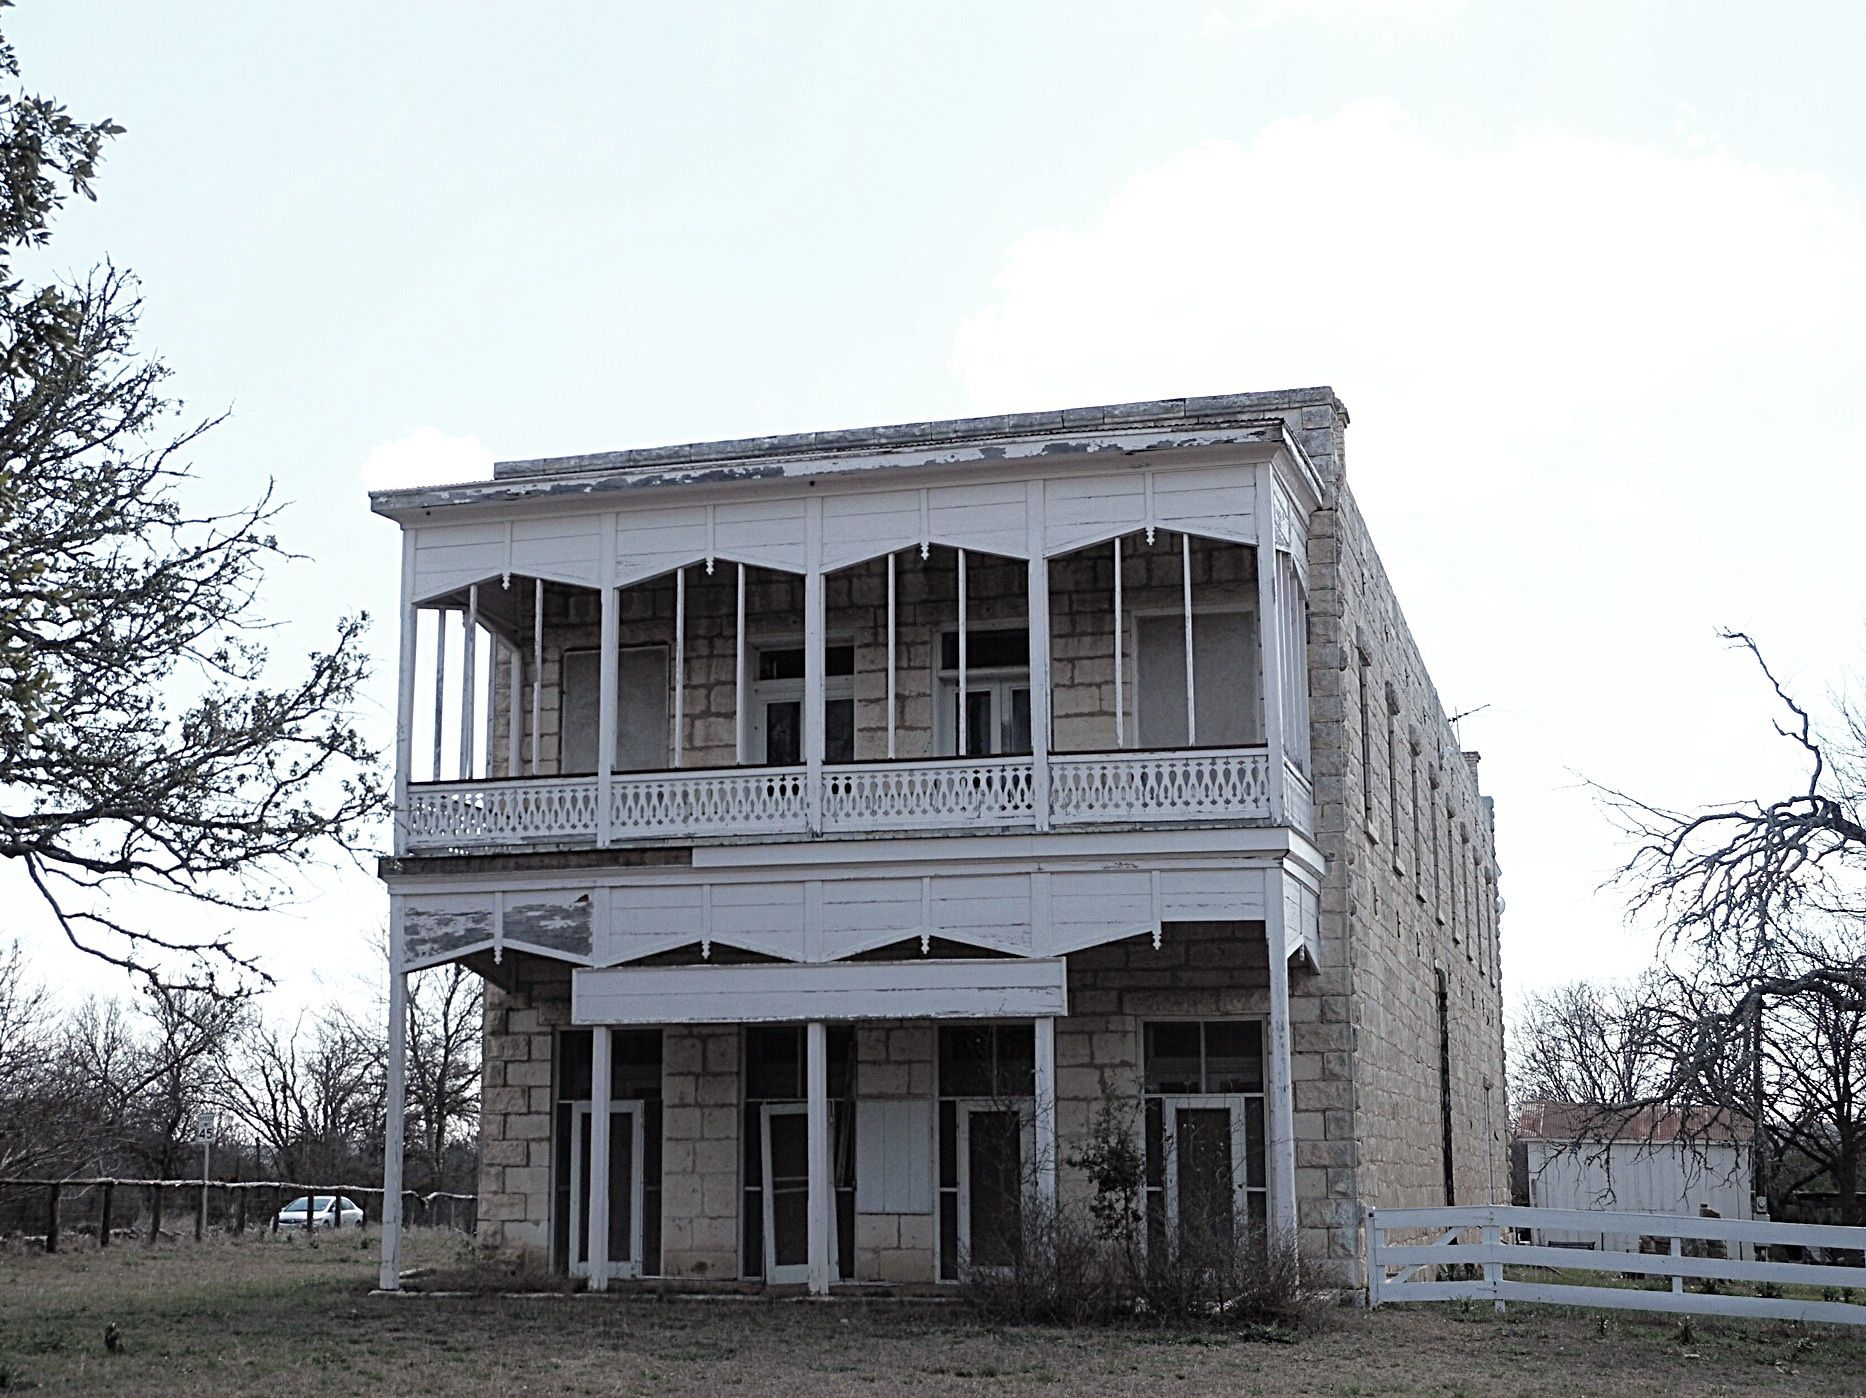 Texas Hill Country Ghost Towns